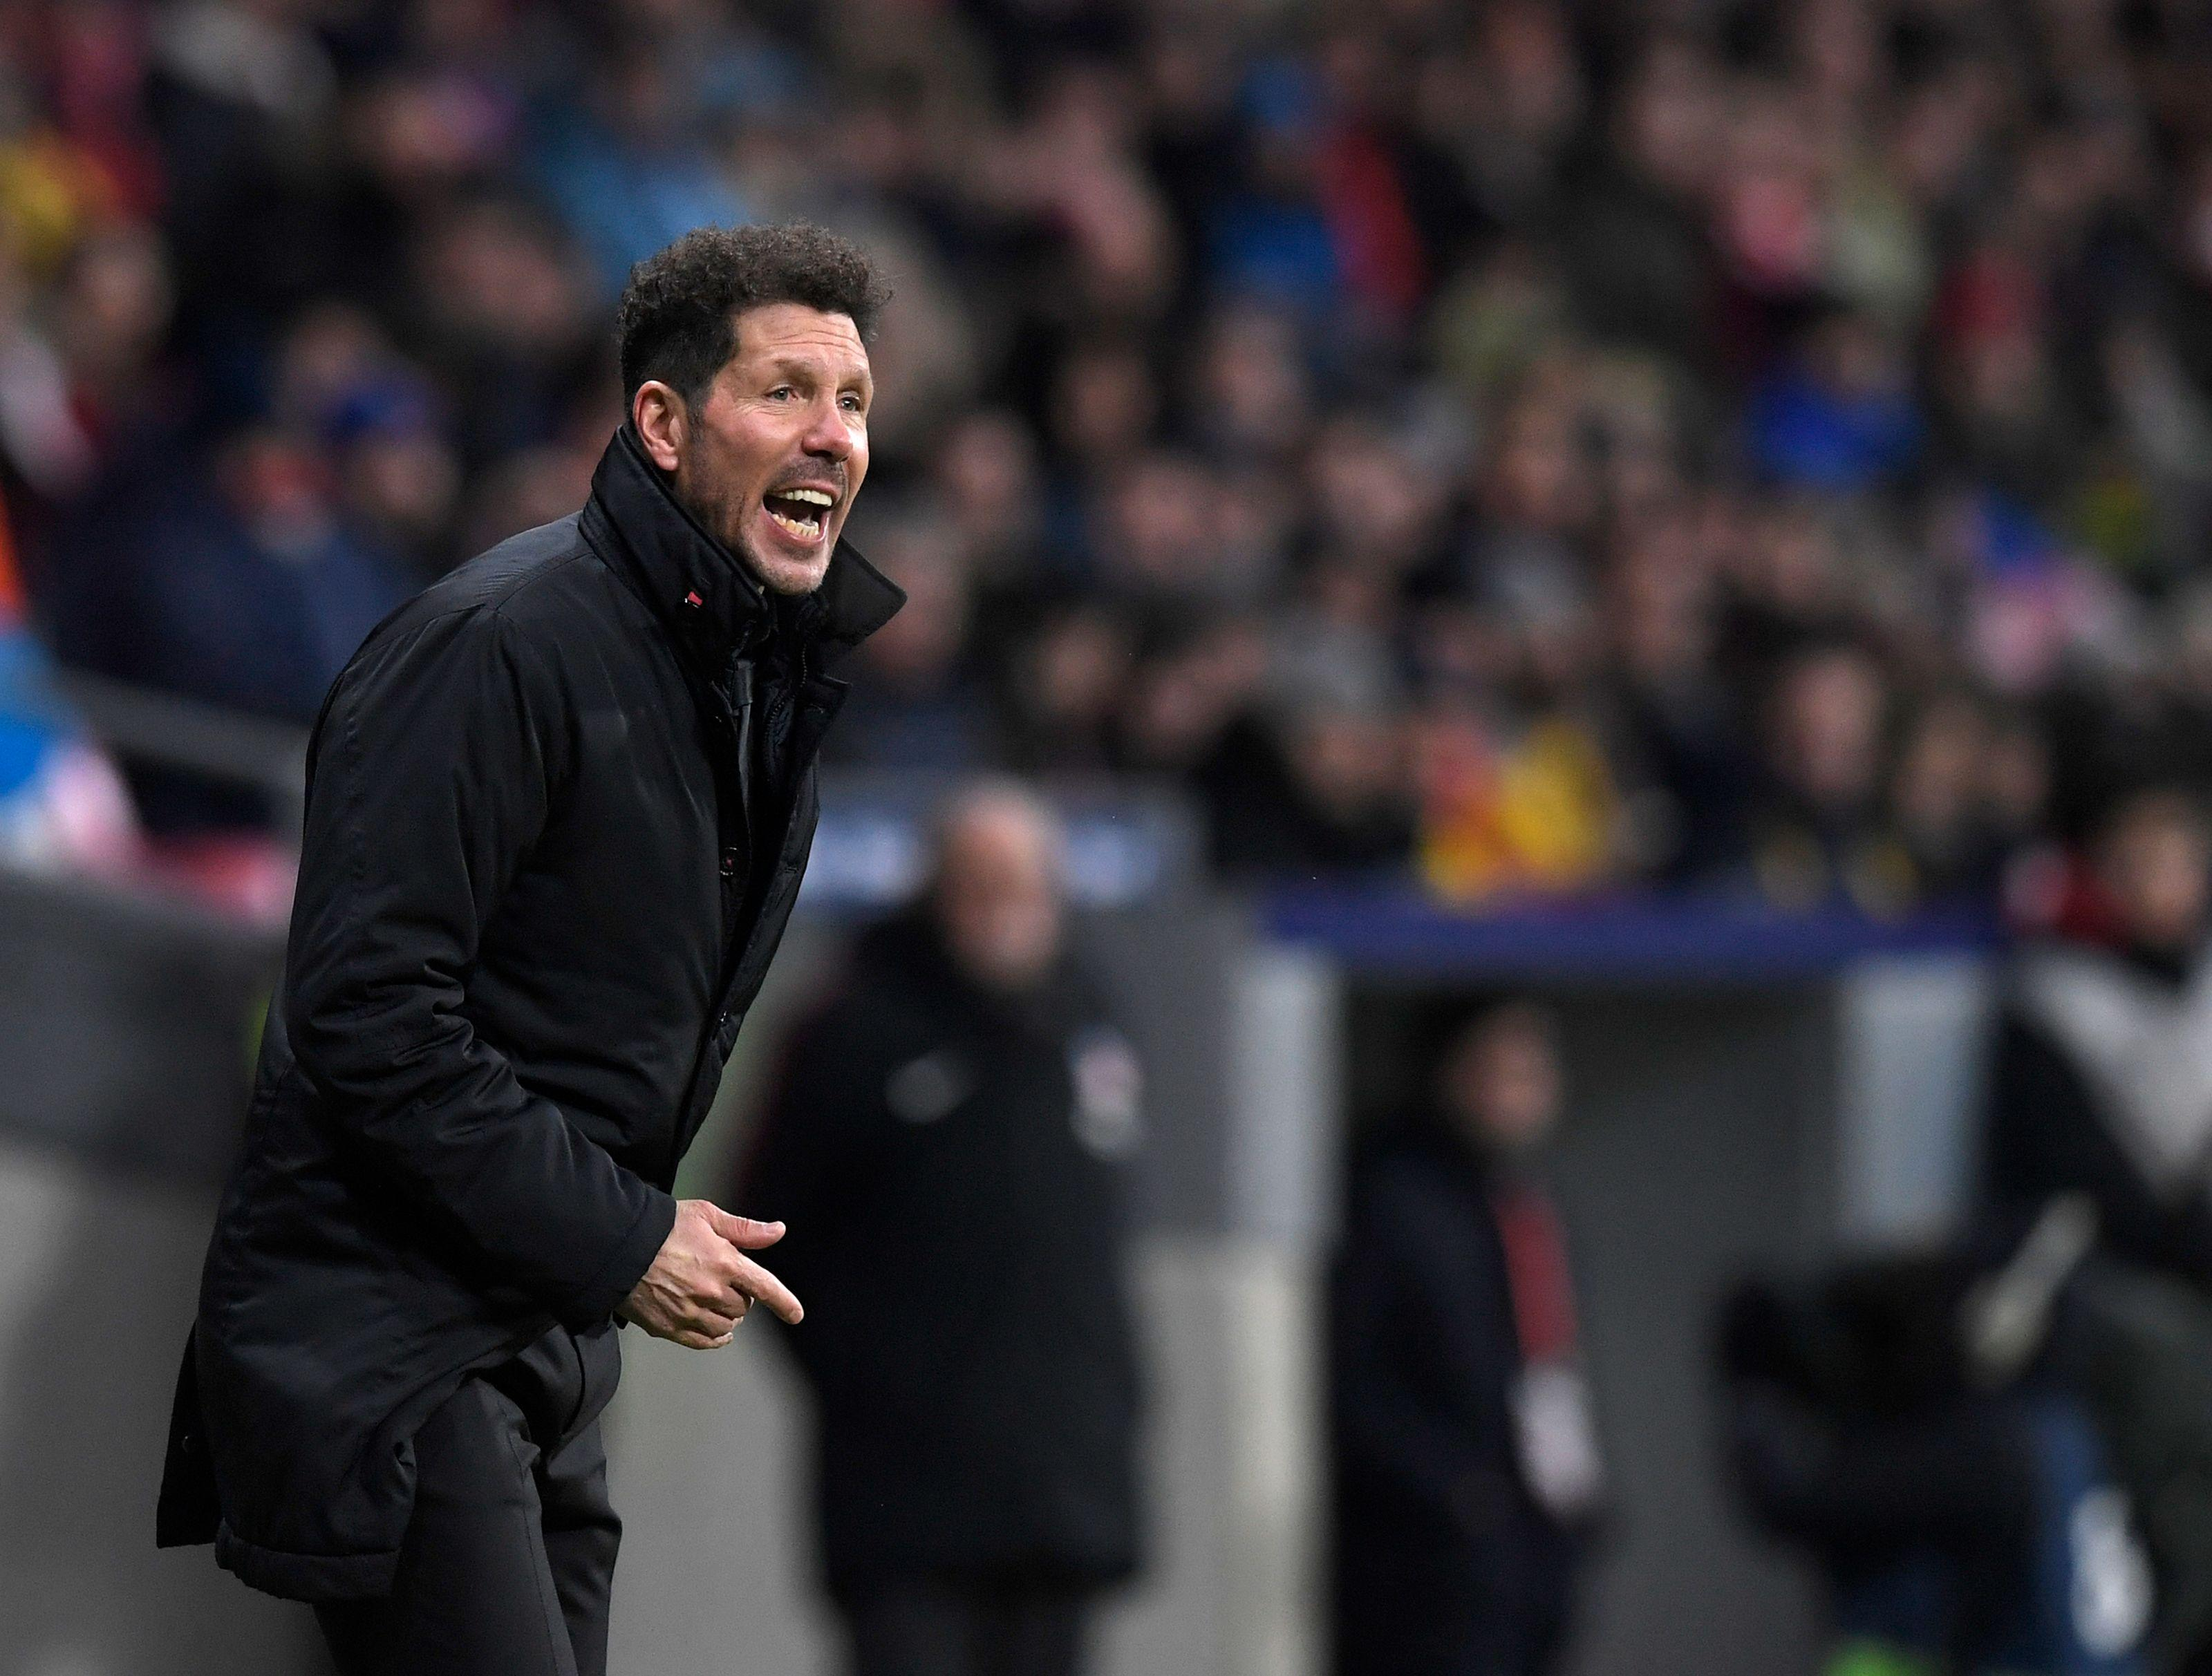 Diego Simeone was delighted with Atletico Madrid's comeback in Denmark